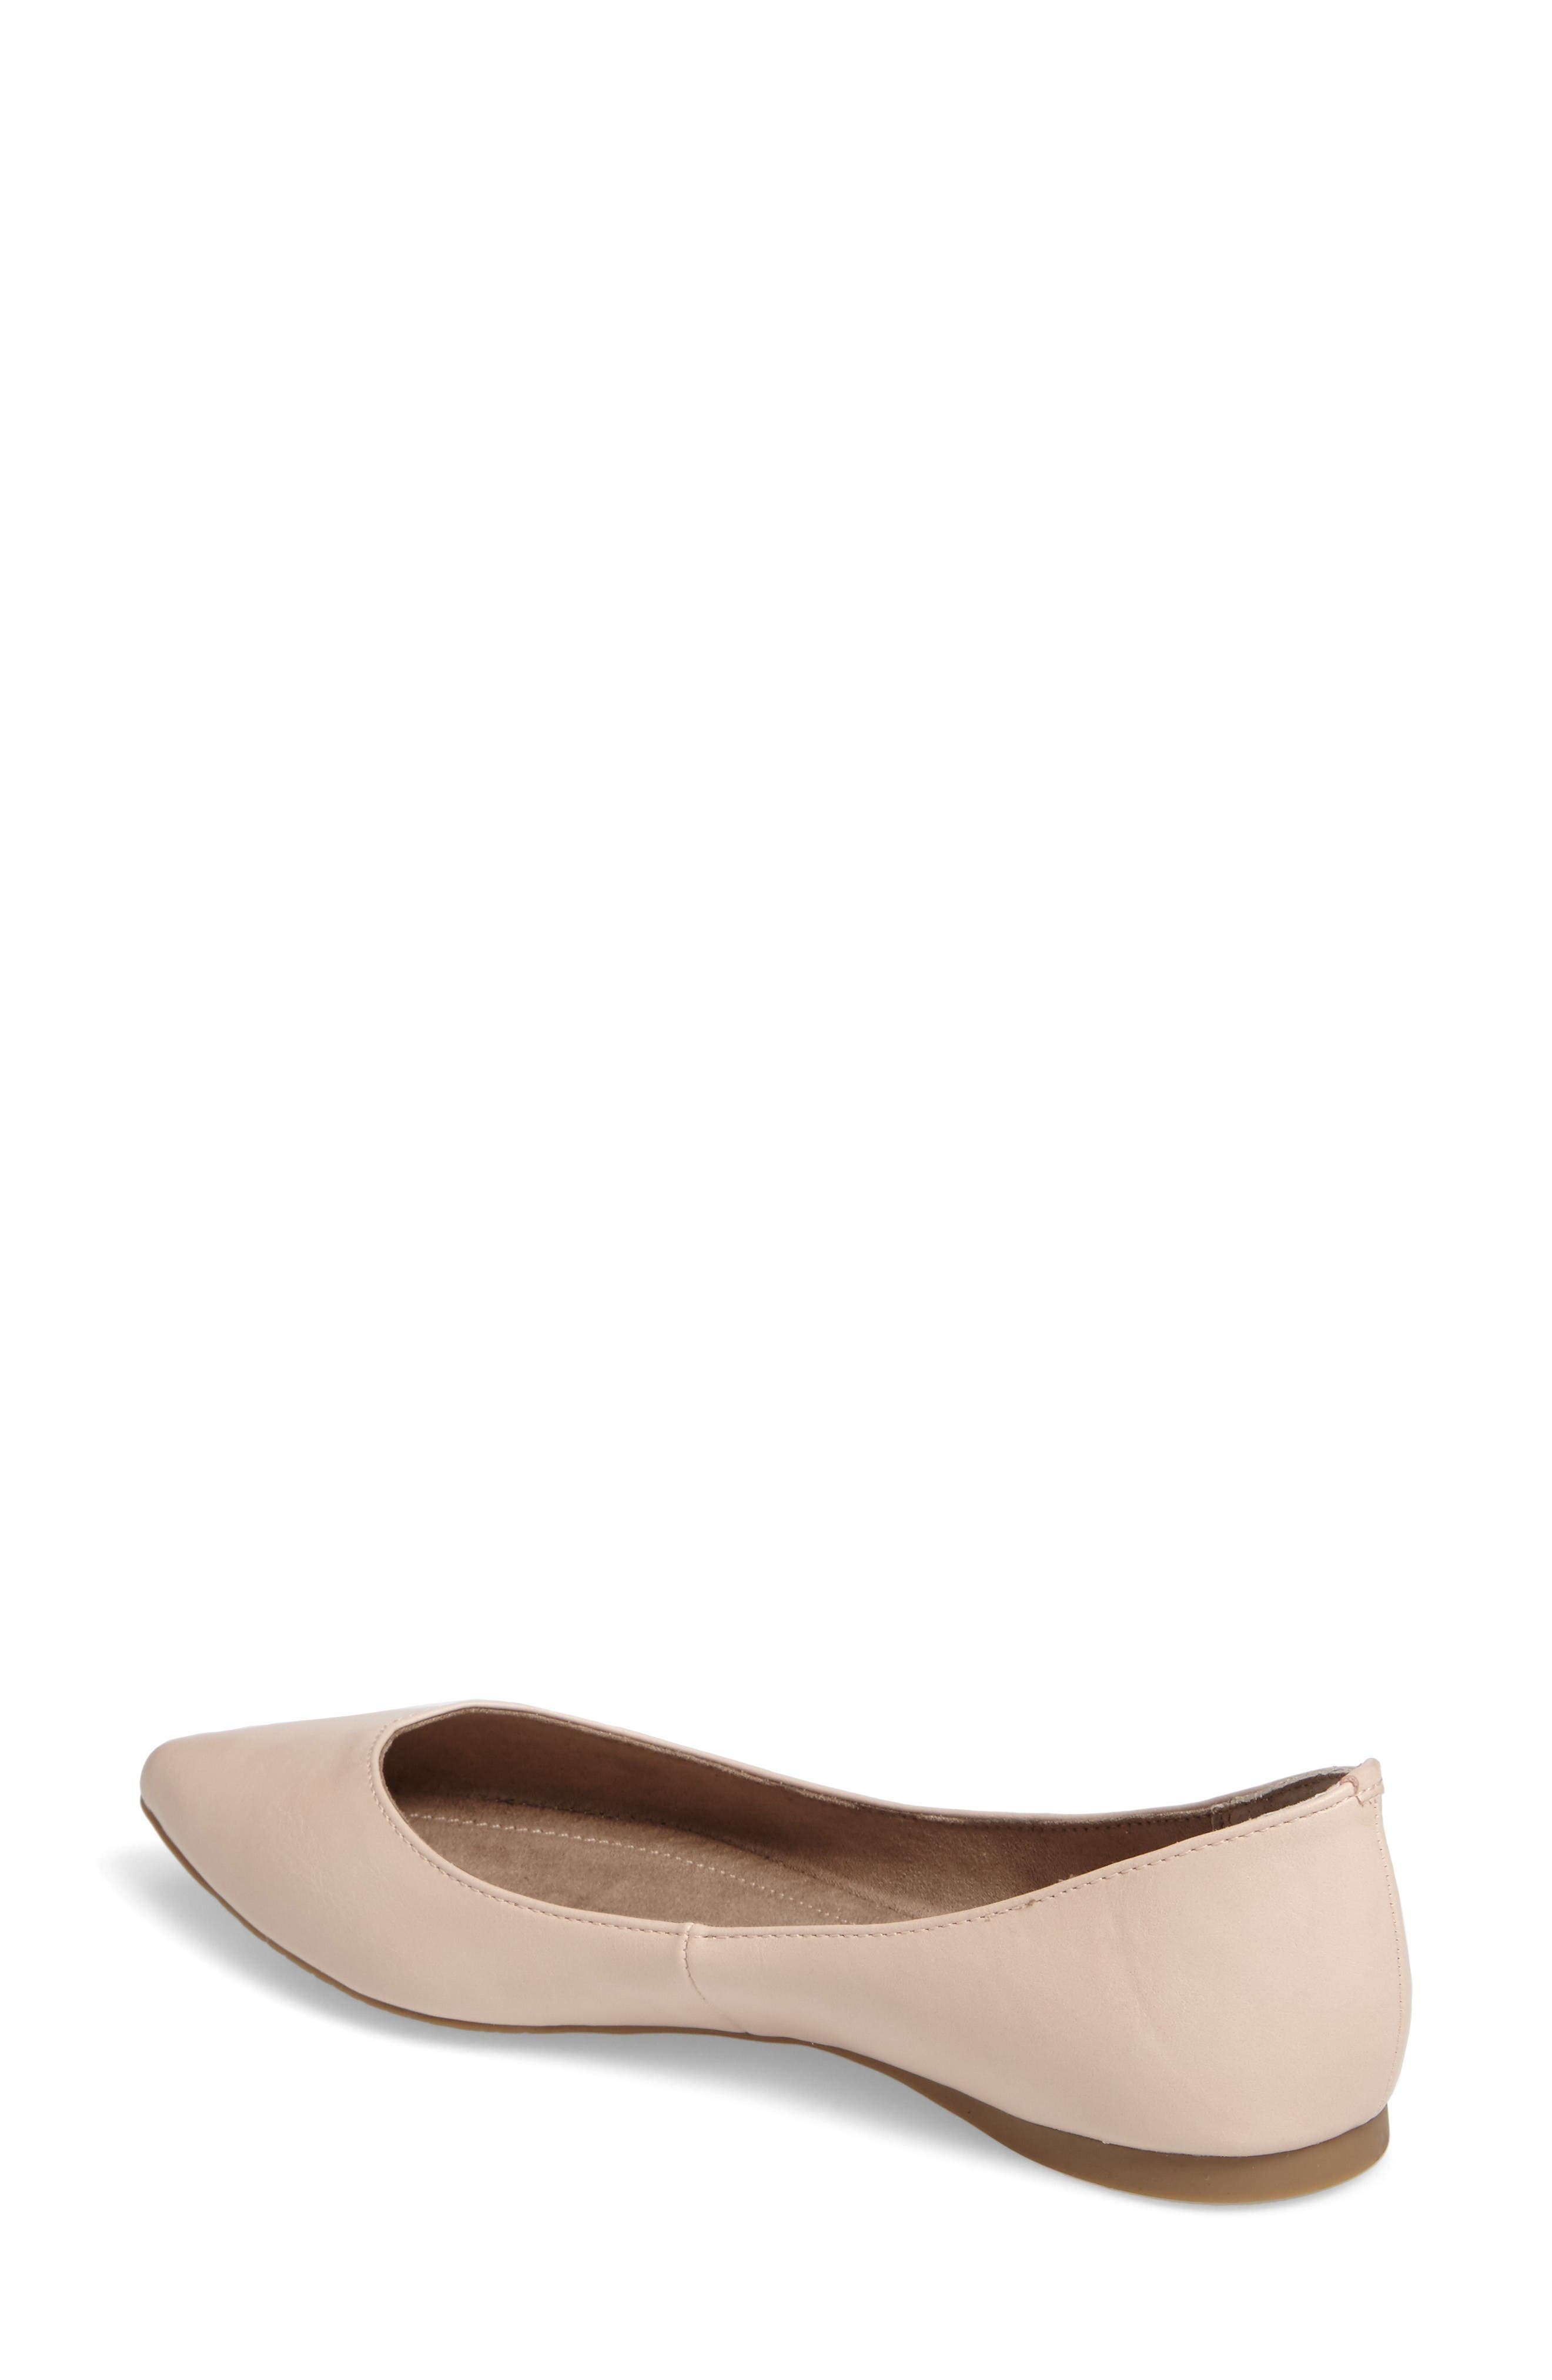 'Moveover' Pointy Toe Flat,                             Alternate thumbnail 2, color,                             Blush Faux Leather